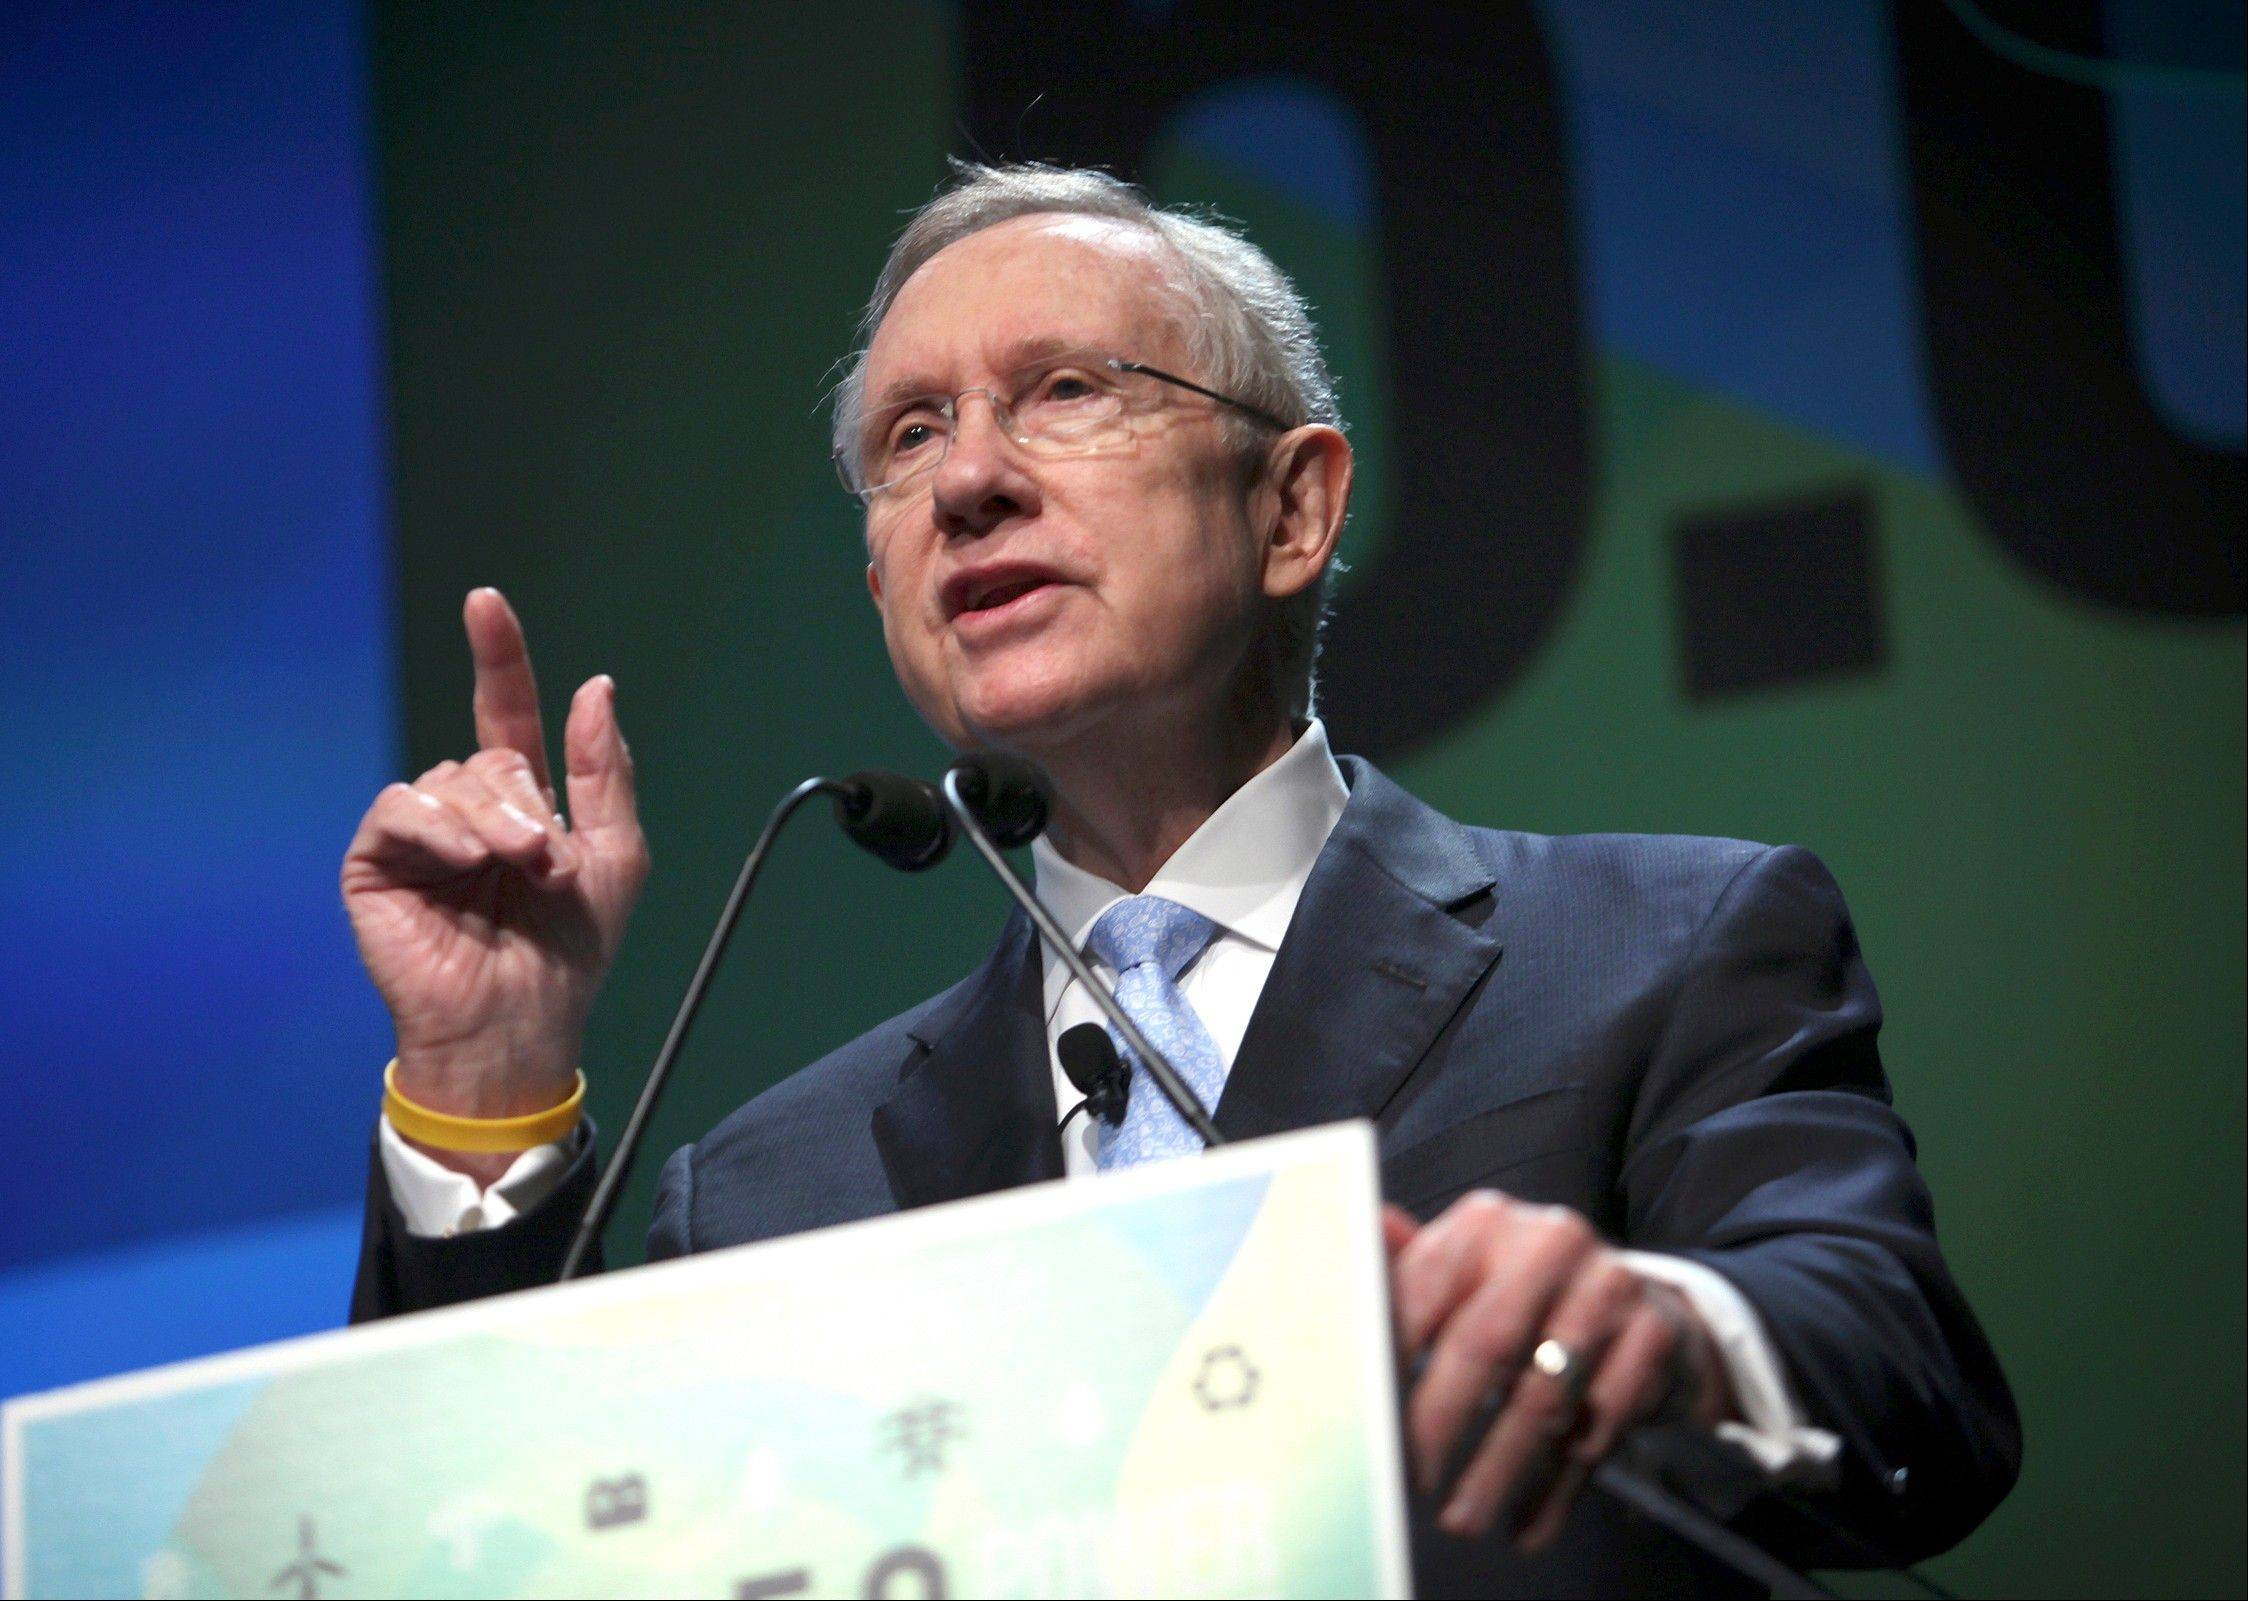 Harry Reid's claims about Romney's taxes are highly suspect